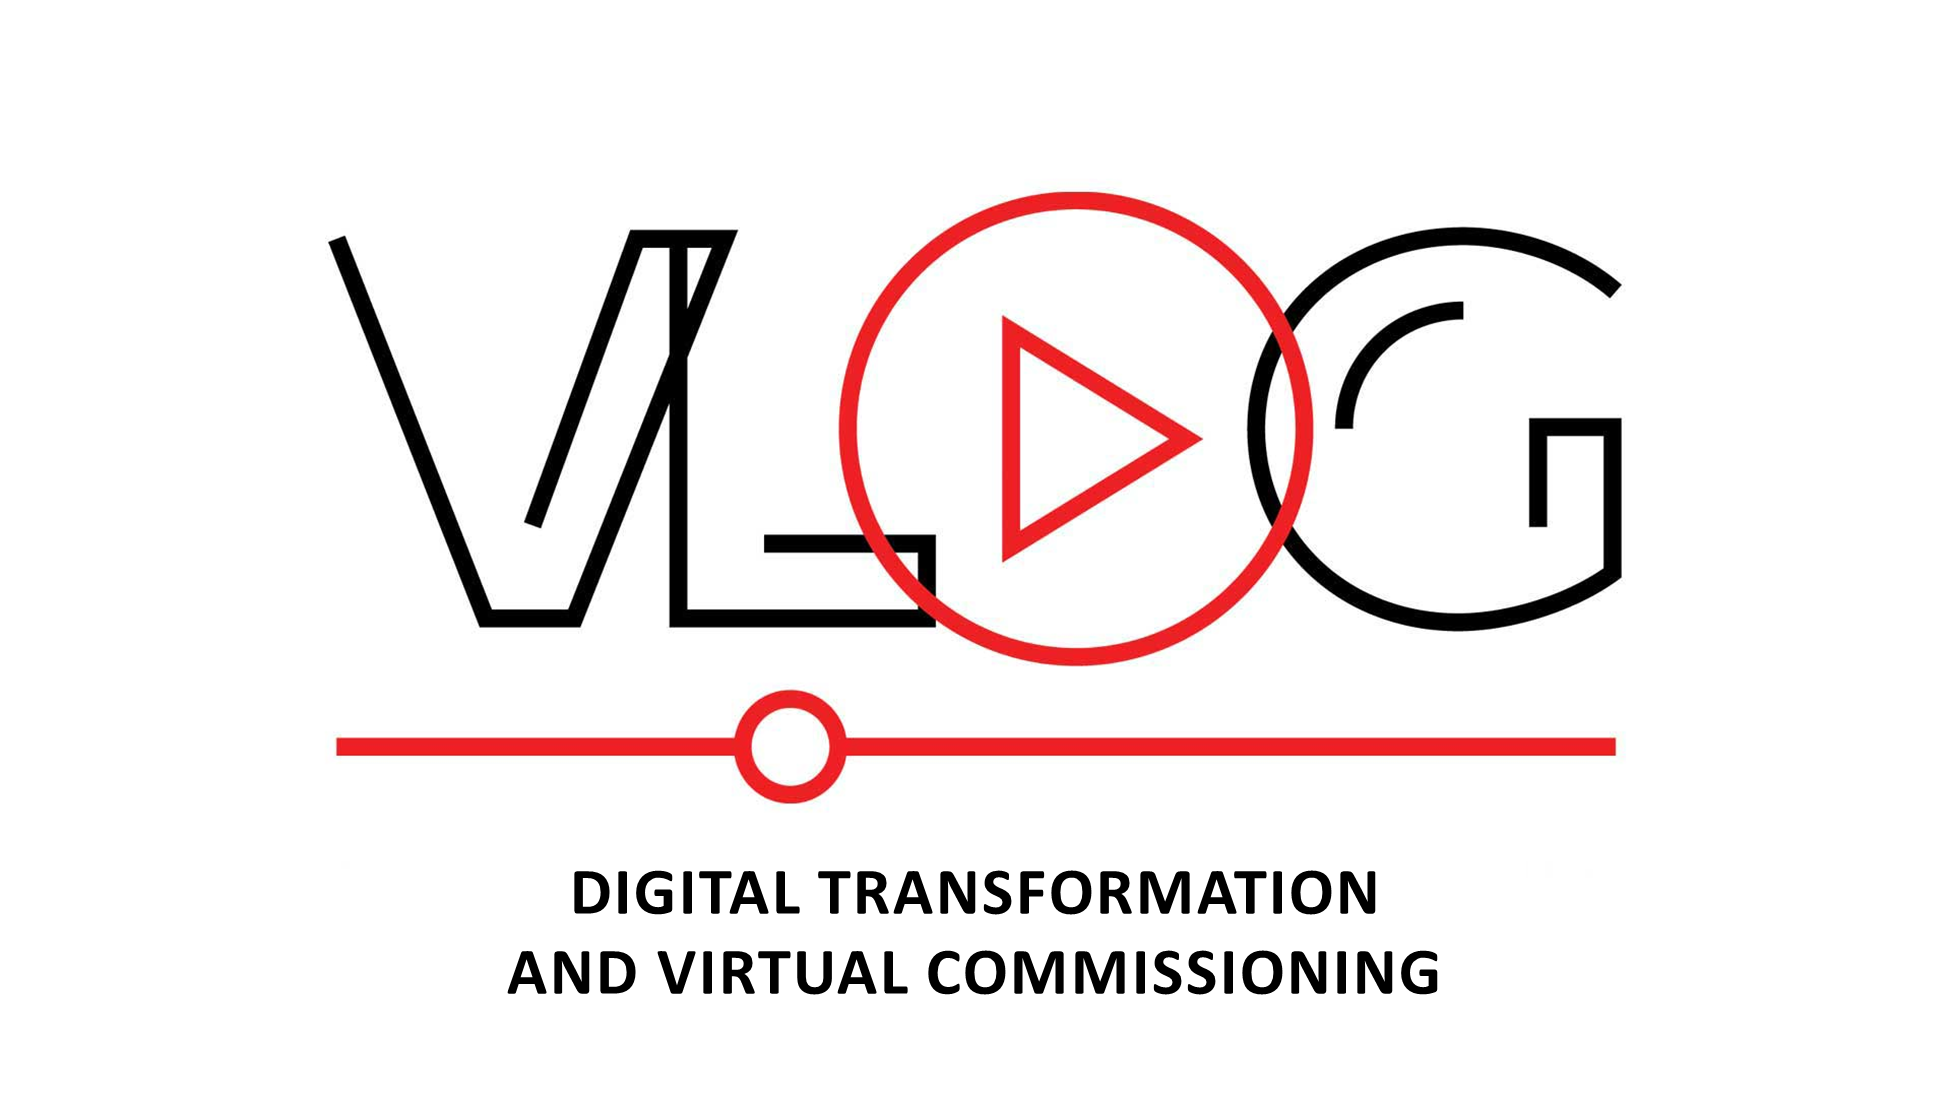 Digital Transformation and Virtual Commissioning Video